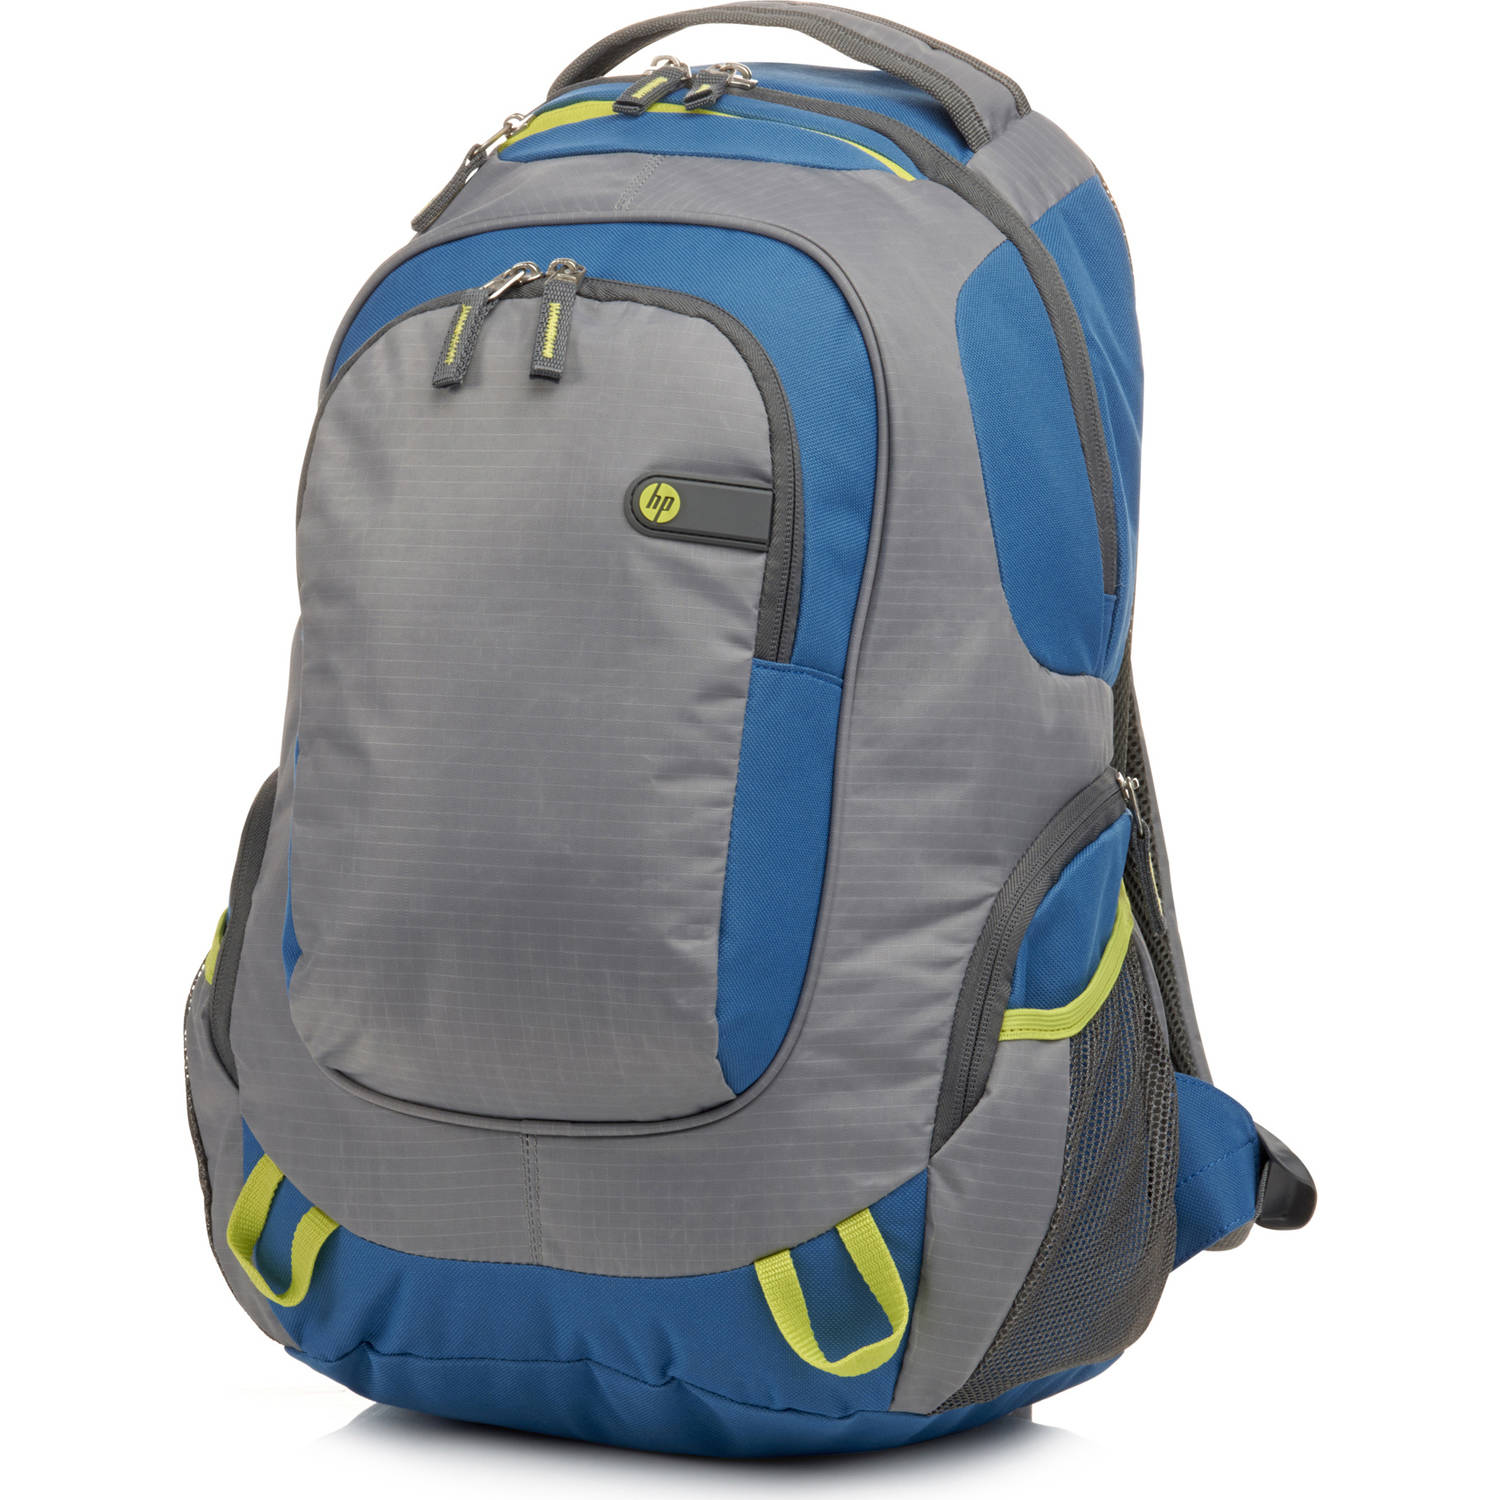 "HP F4F29AA#ABL 15.6"" Outdoor Sport Backpack, Blue/Green"